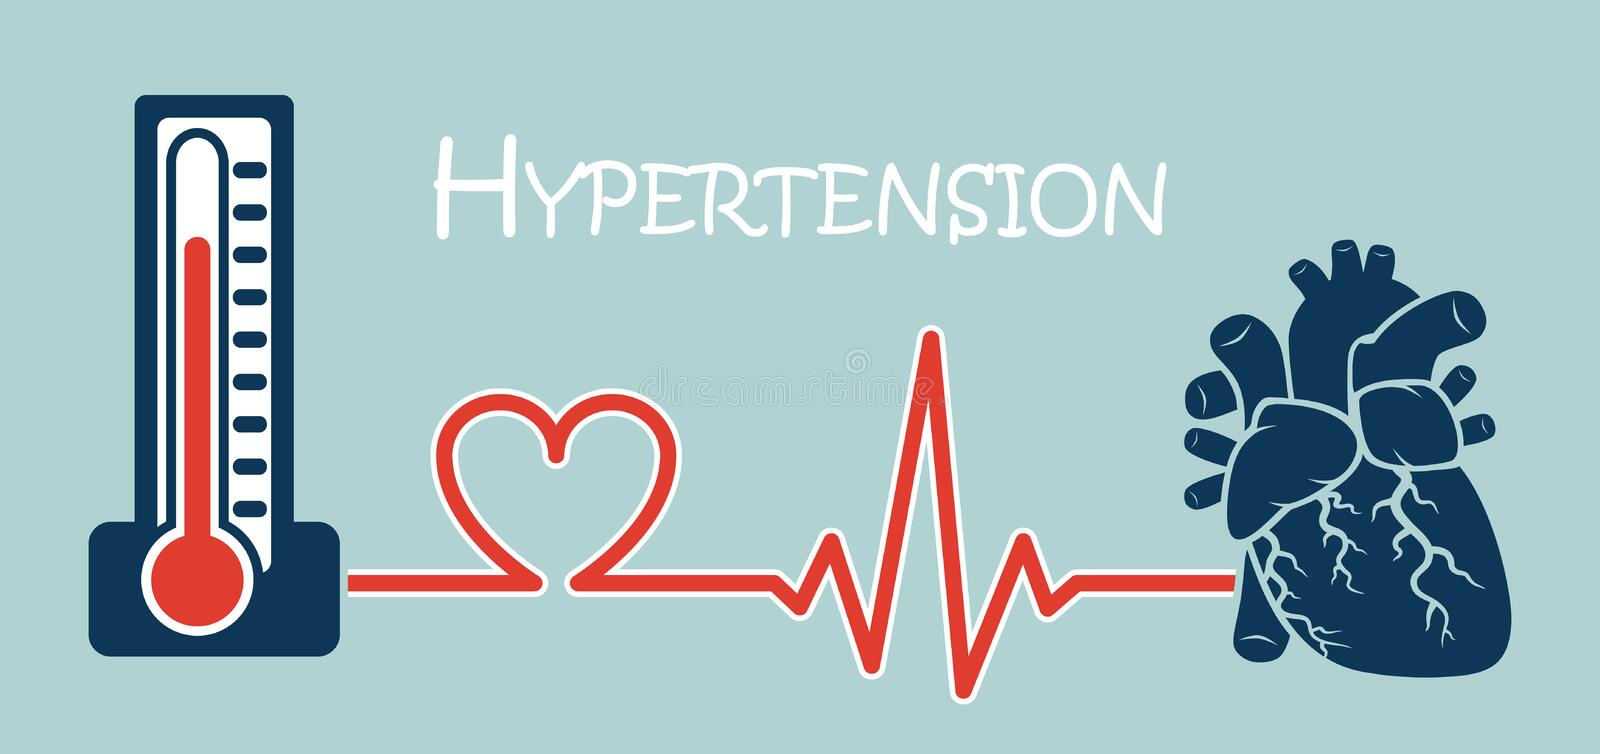 Essential or Primary Hypertension. ( high blood pressure )( sphygmomanometer connect to heart ) ( flat design ) ( NCD concept ( Non communicable diseases royalty free illustration